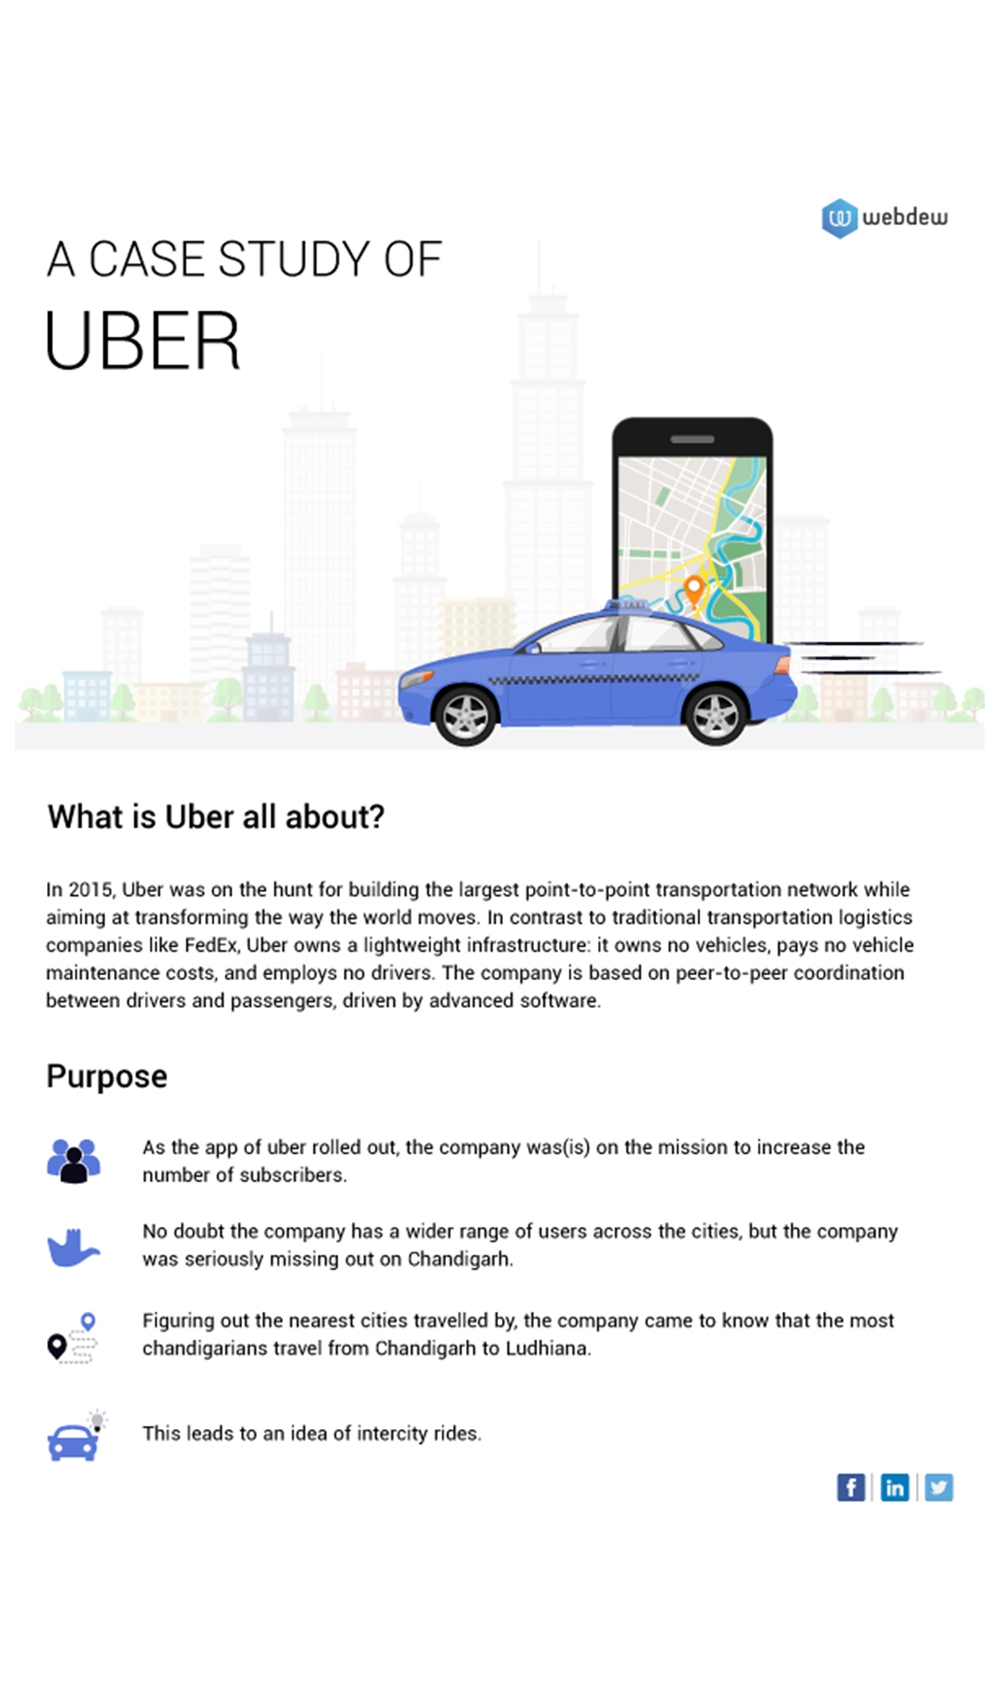 A Case Study of Uber